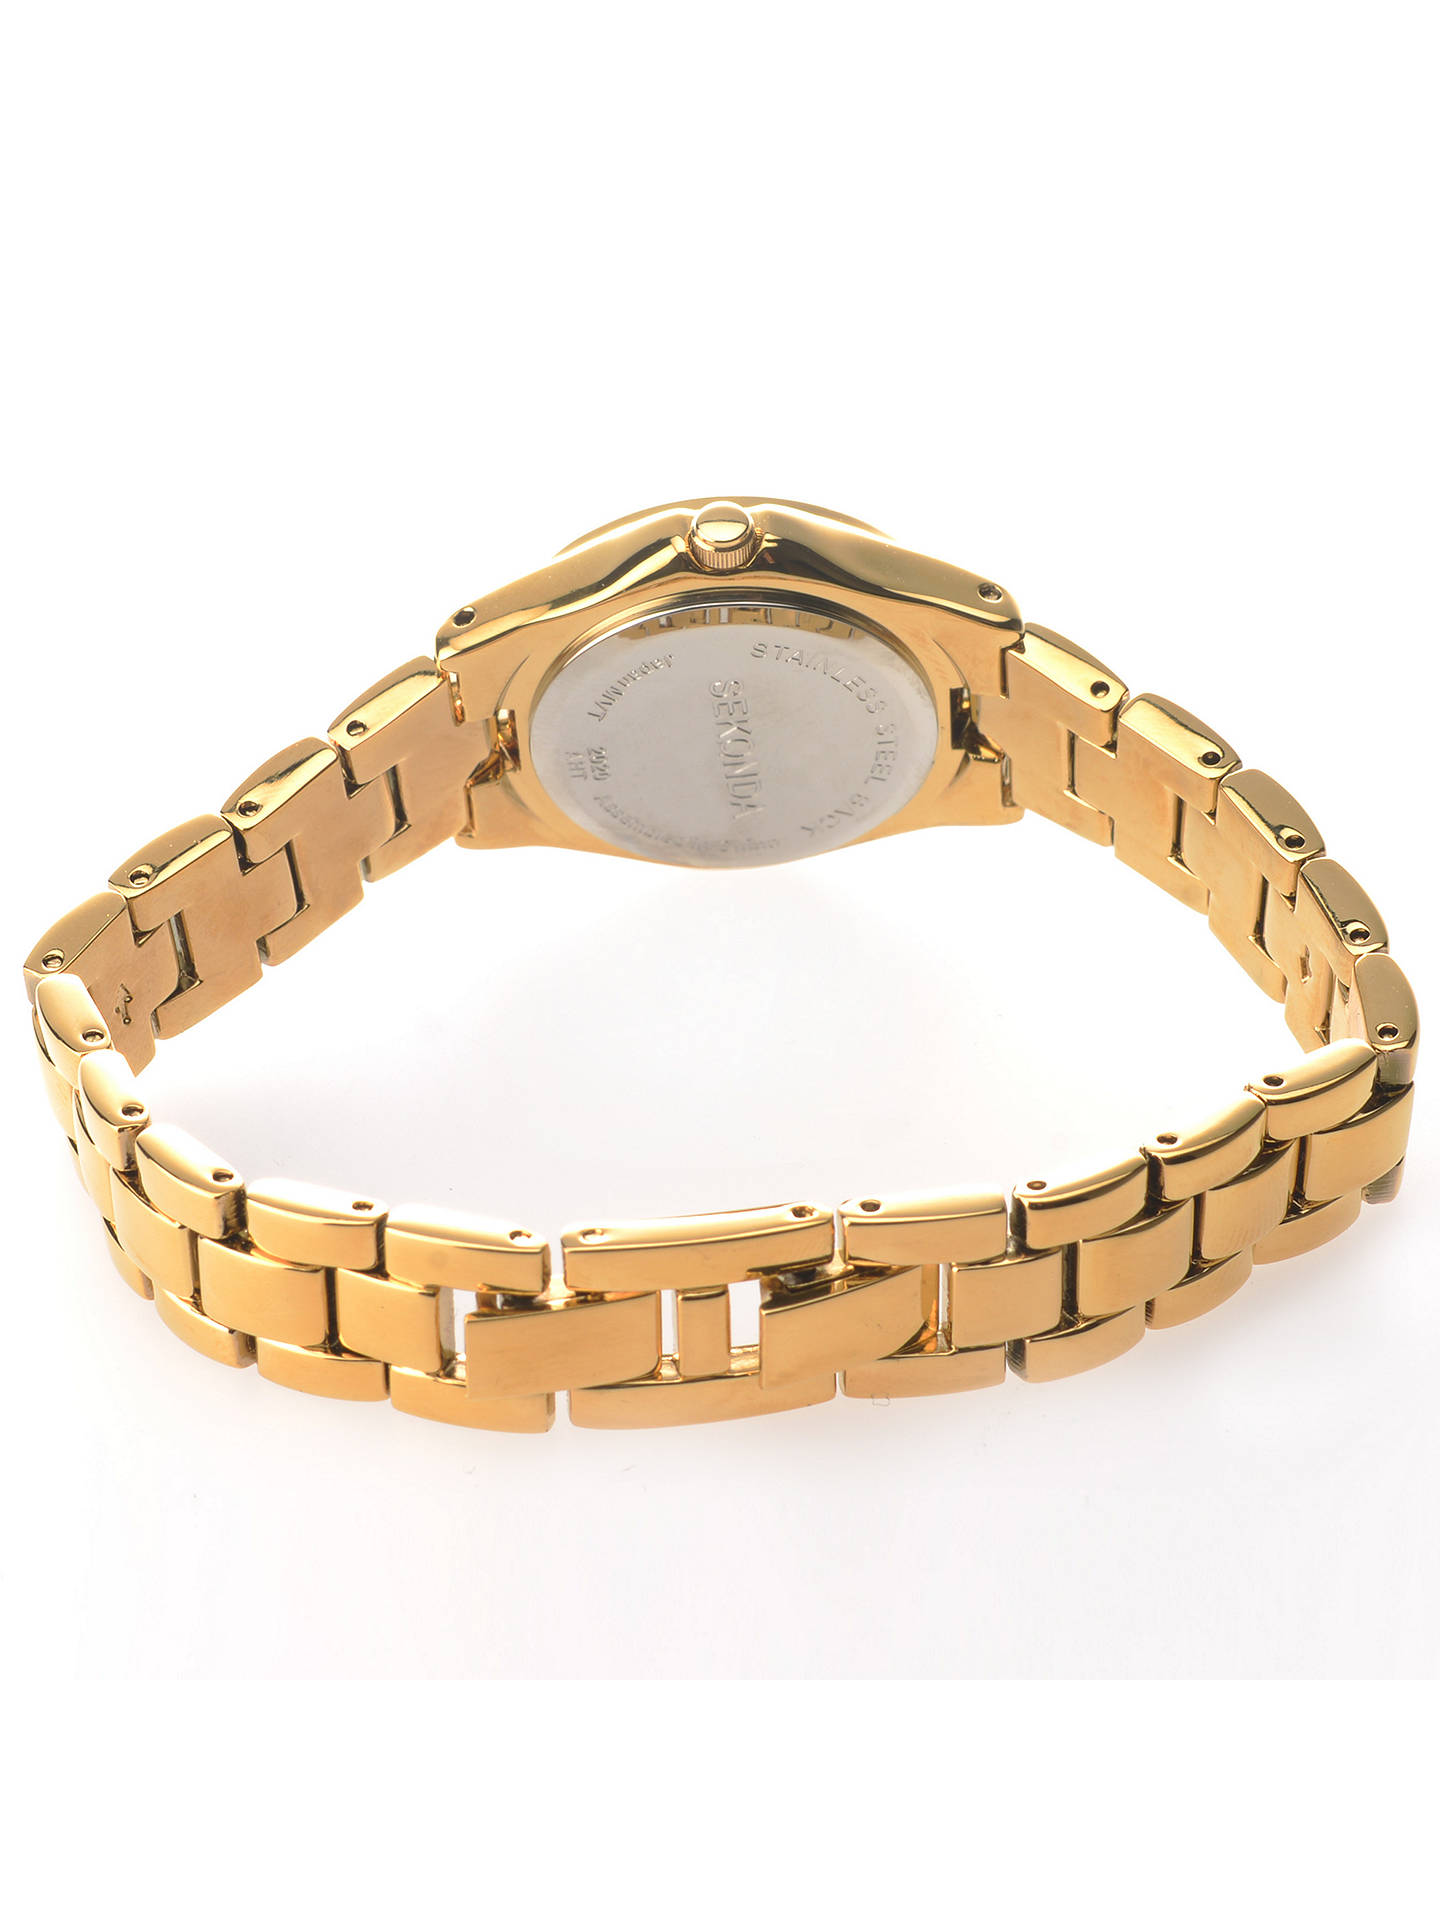 BuySekonda 2020.27 Women's Diamante Bracelet Strap Watch, Gold Online at johnlewis.com